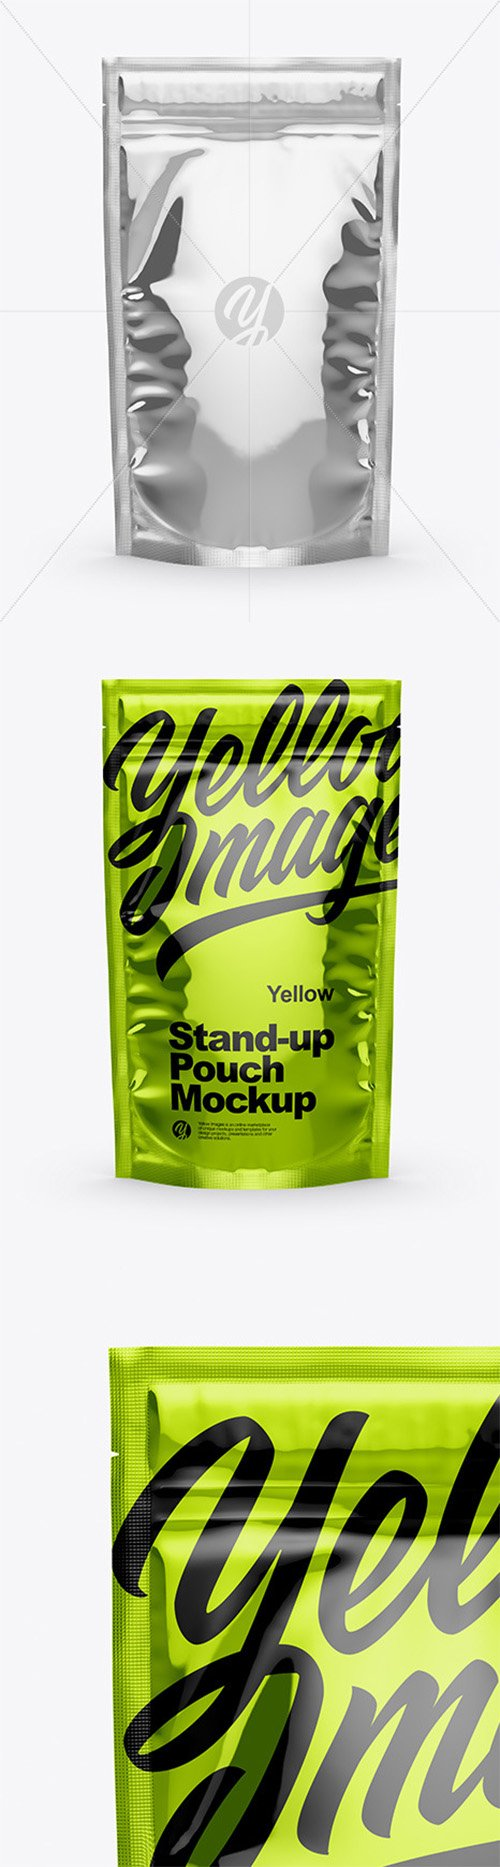 Glossy Metallic Stand Up Pouch with Zipper Mockup 51162 TIF